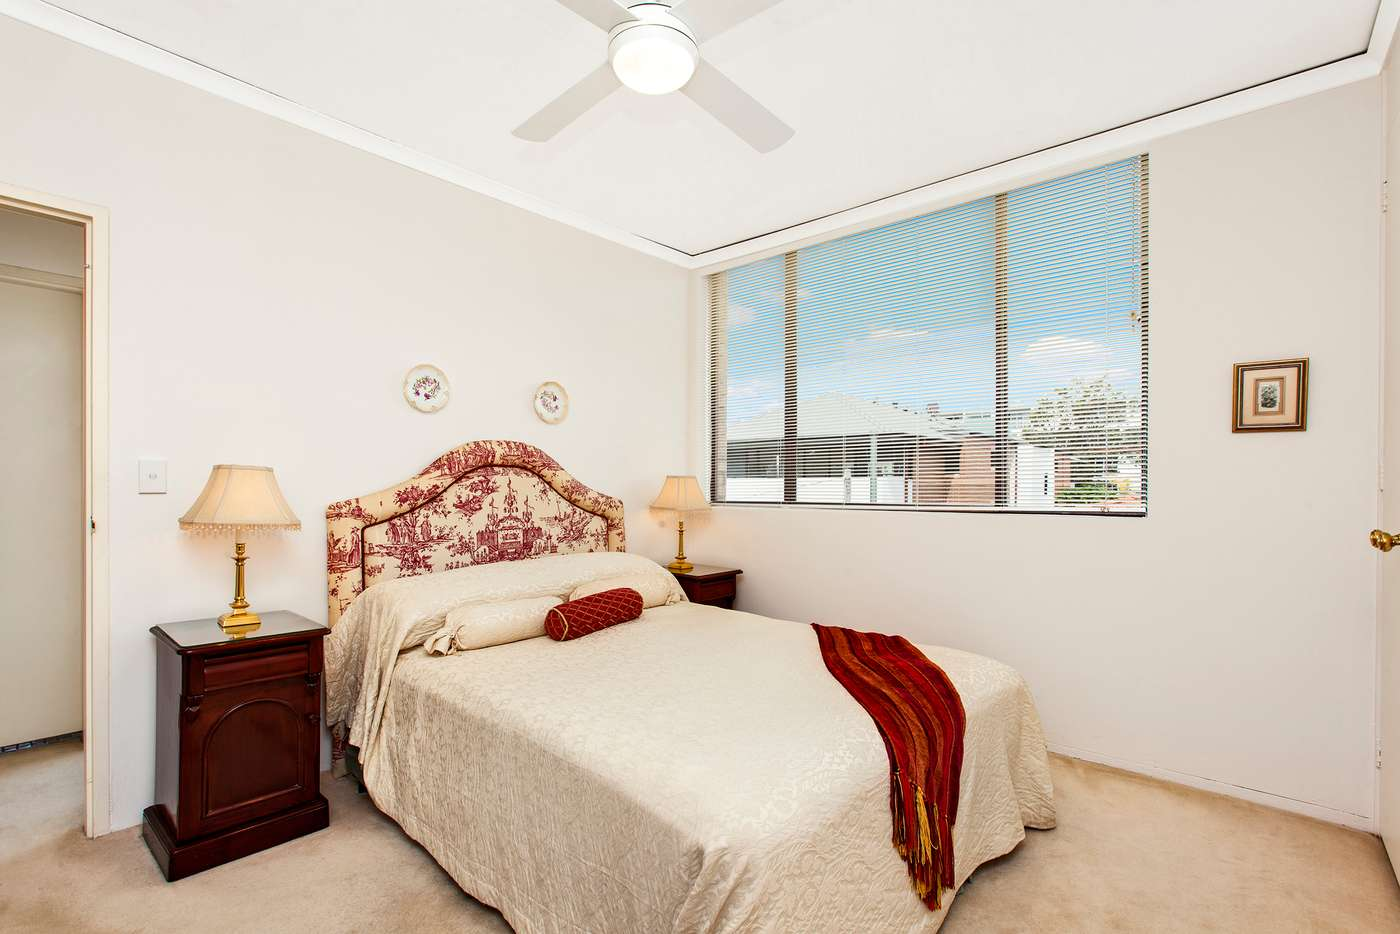 Fifth view of Homely apartment listing, 15/5-13 Belgrave Street, Cremorne NSW 2090